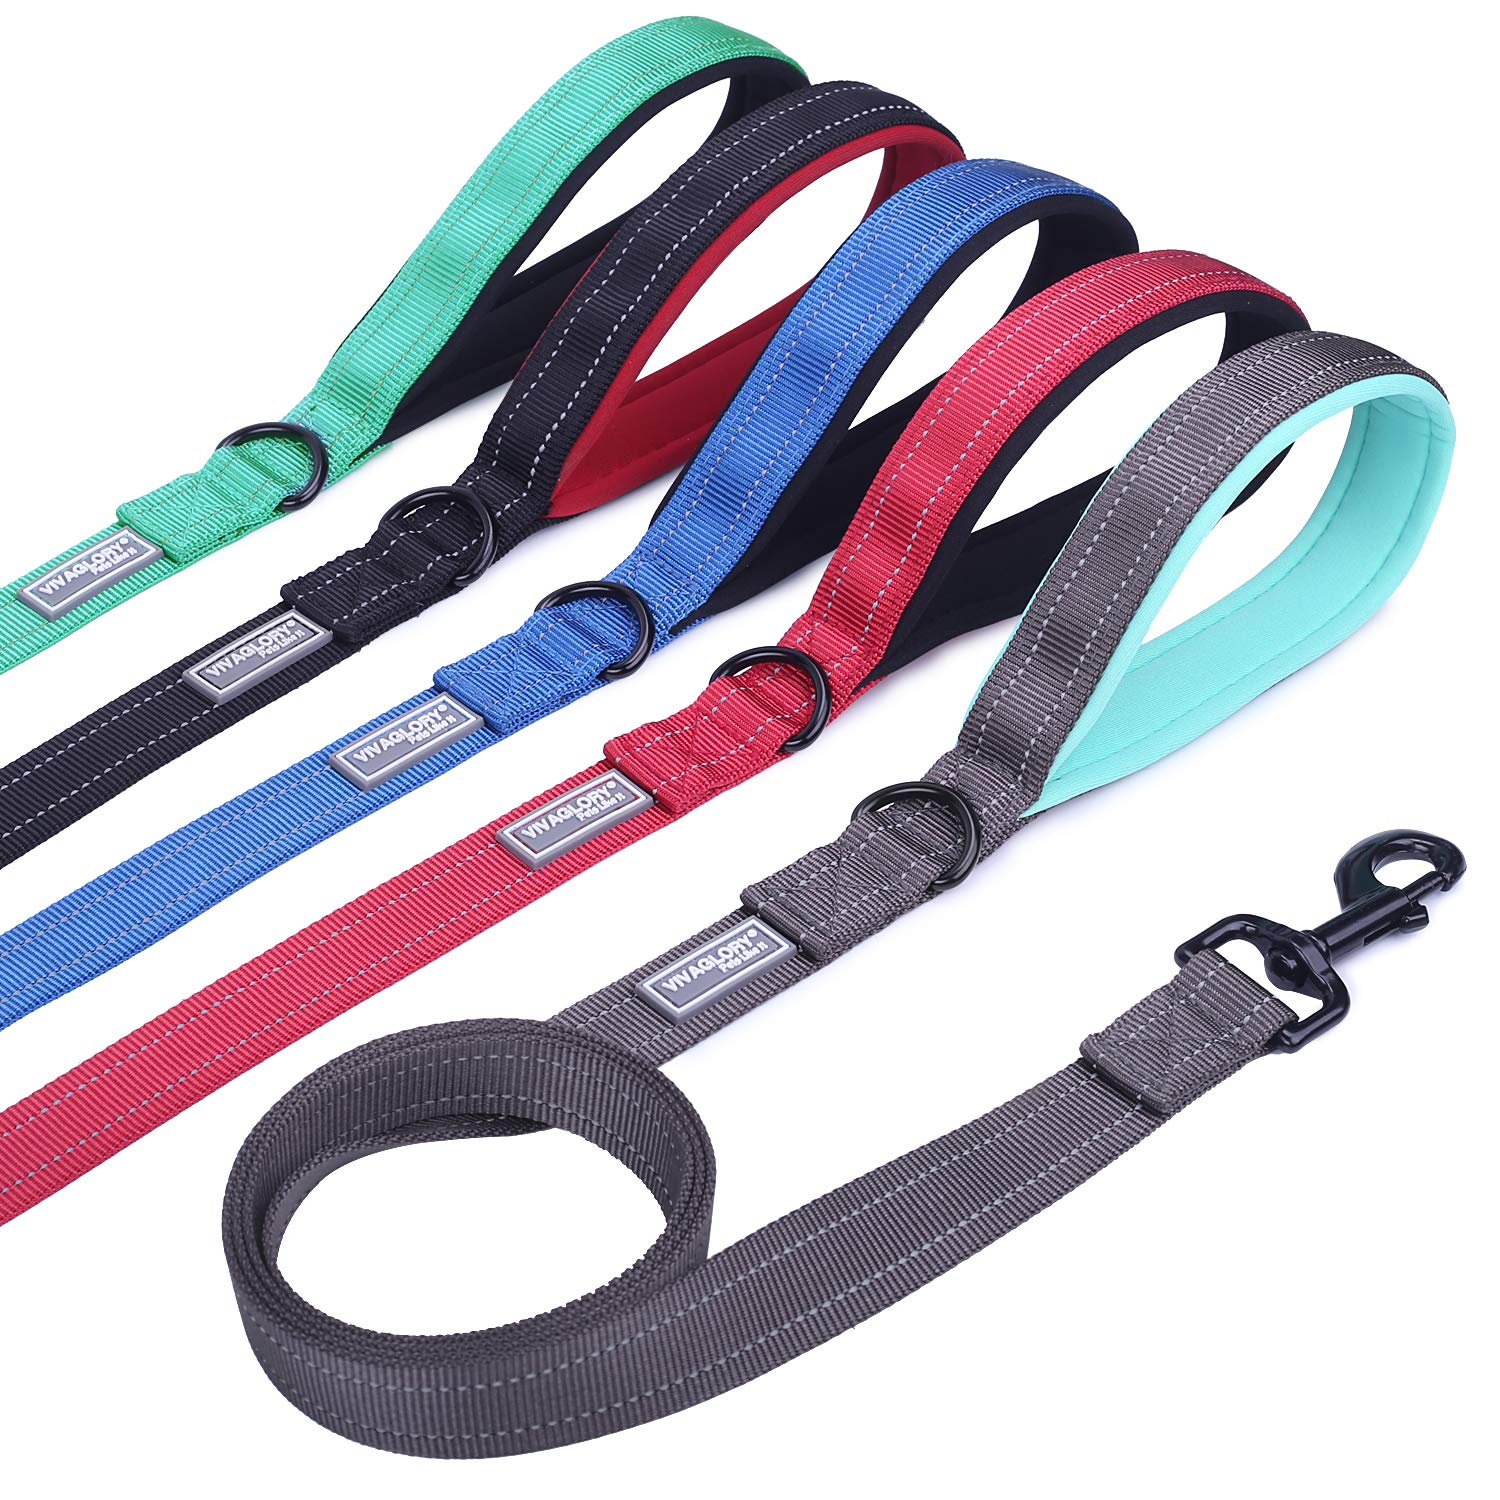 Vivaglory Dog Training Leash with Padded Handle, Heavy Duty 6ft Long Reflective Nylon Leash Walking Lead for Medium to Large Dogs, Grey by Vivaglory